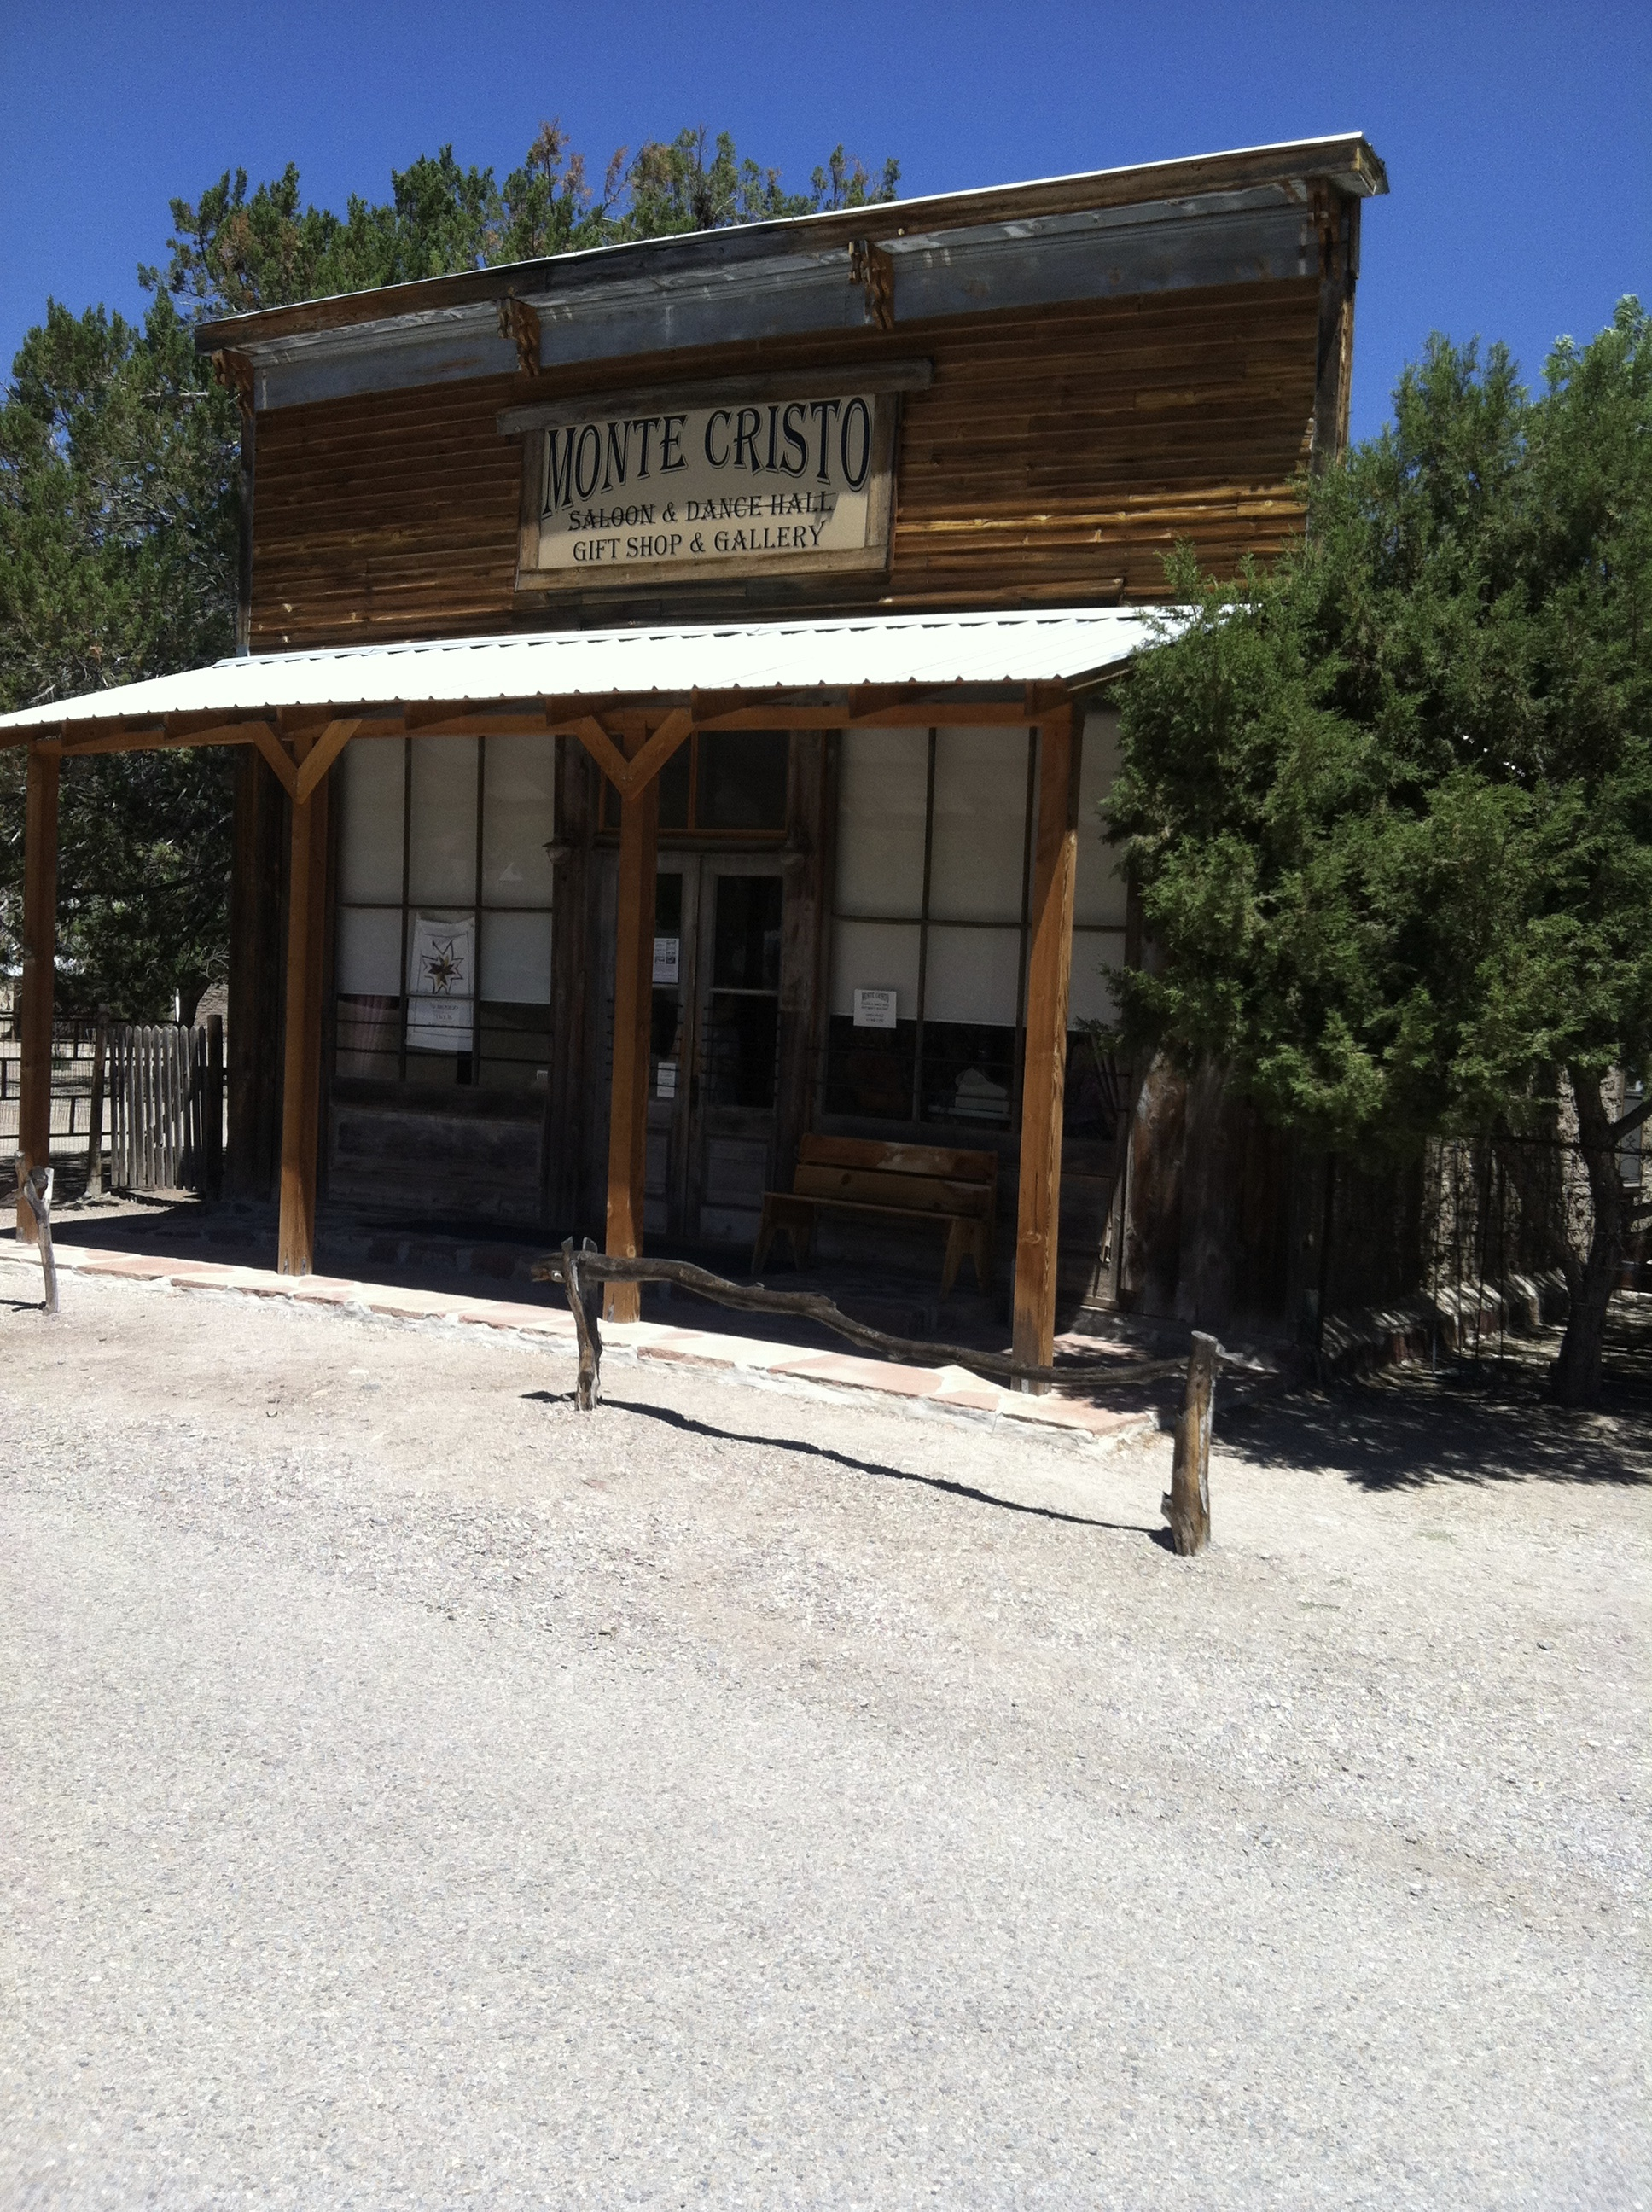 Here are some pictures of a ghost town not far from Kingston NM. It is Chloride, NM.